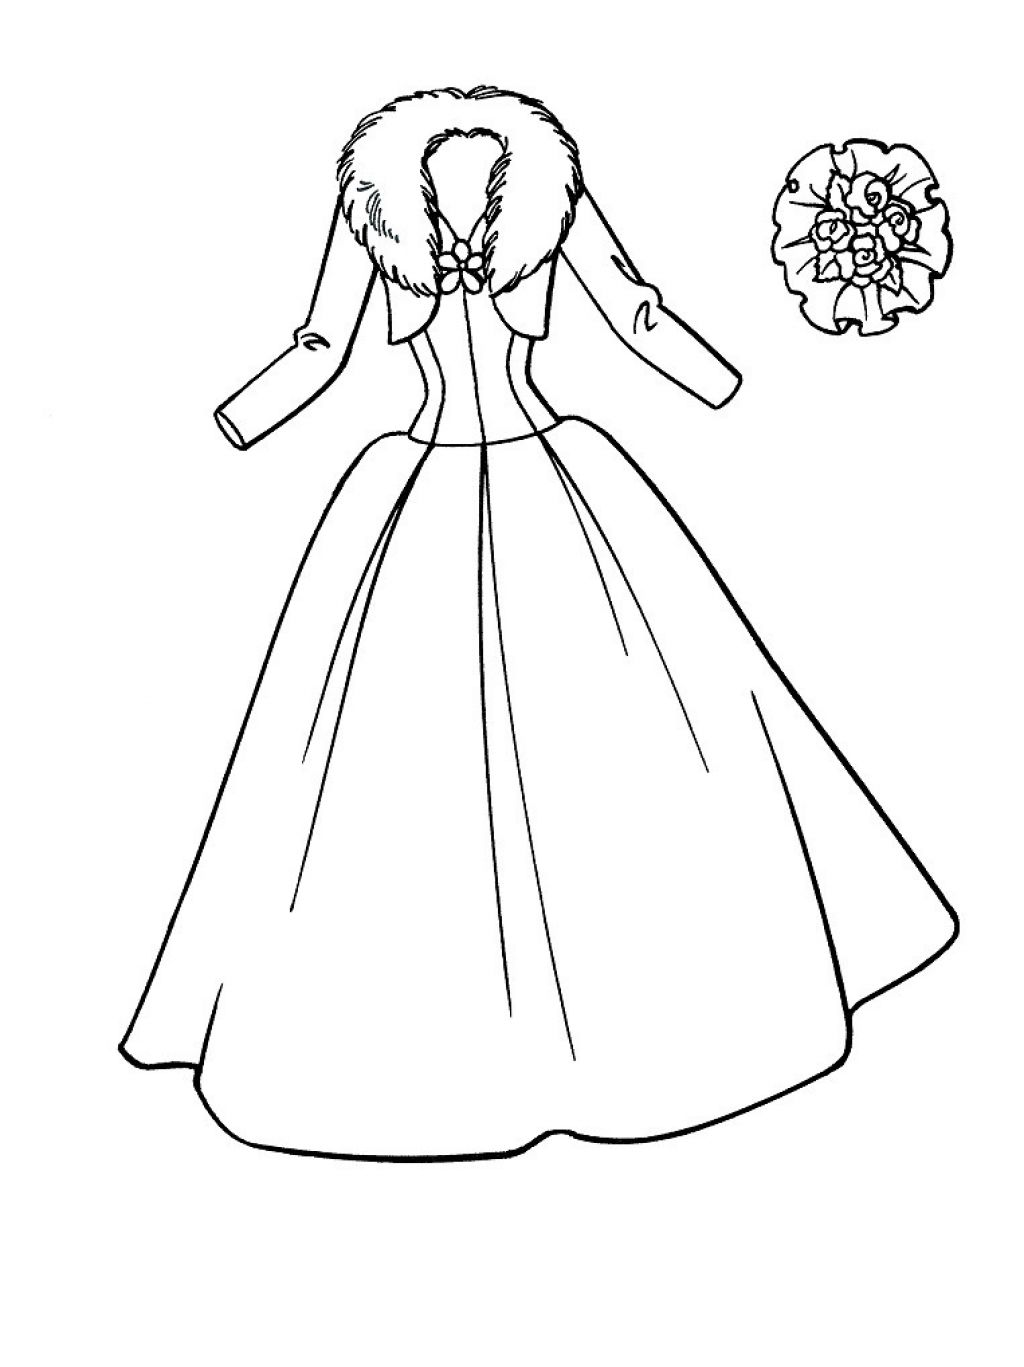 1024x1367 Dress Coloring Pages For Girls Preschool In Beatiful Page Draw